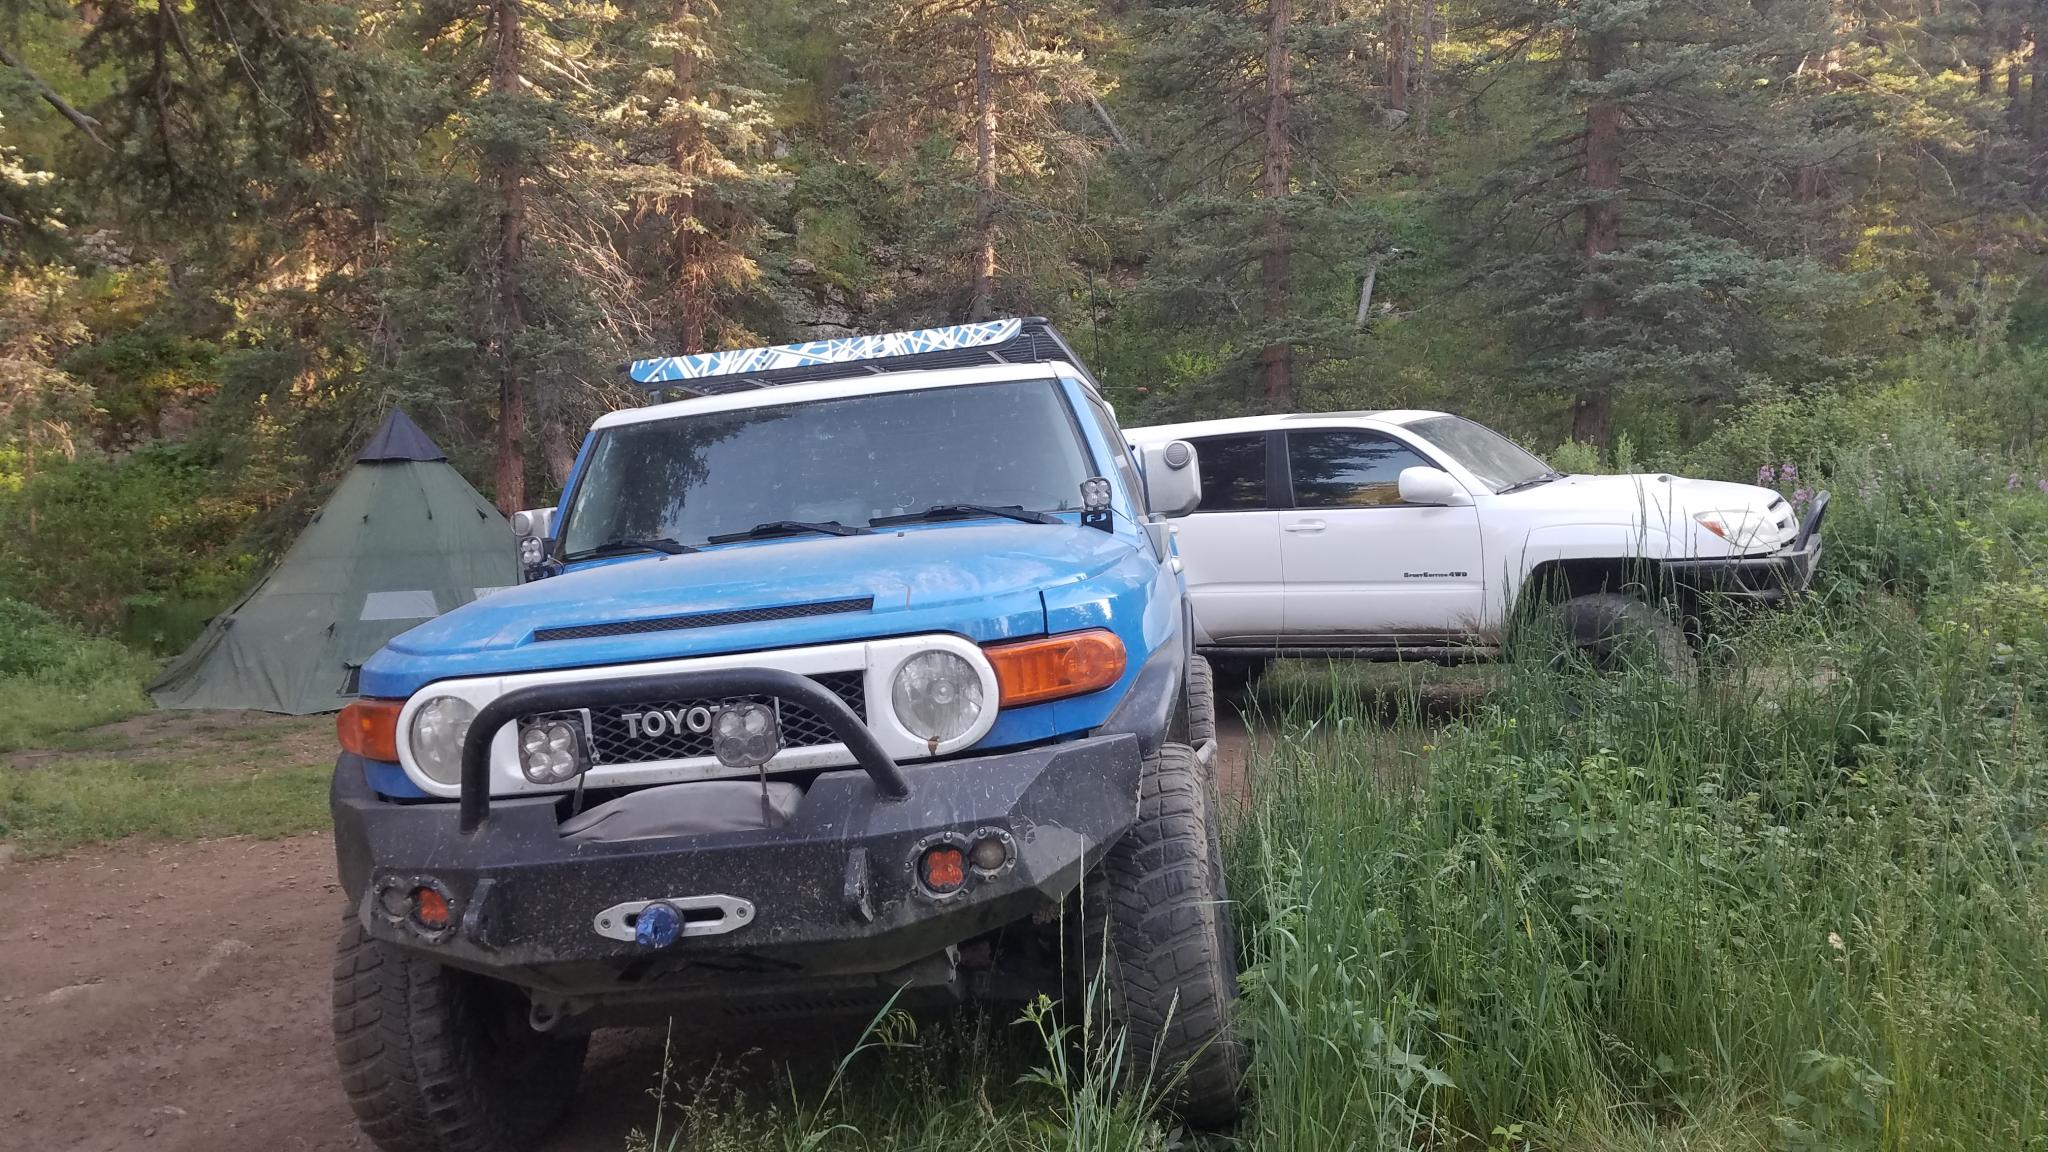 Let see your camping pics with the FJ..-20190718_191707.jpg